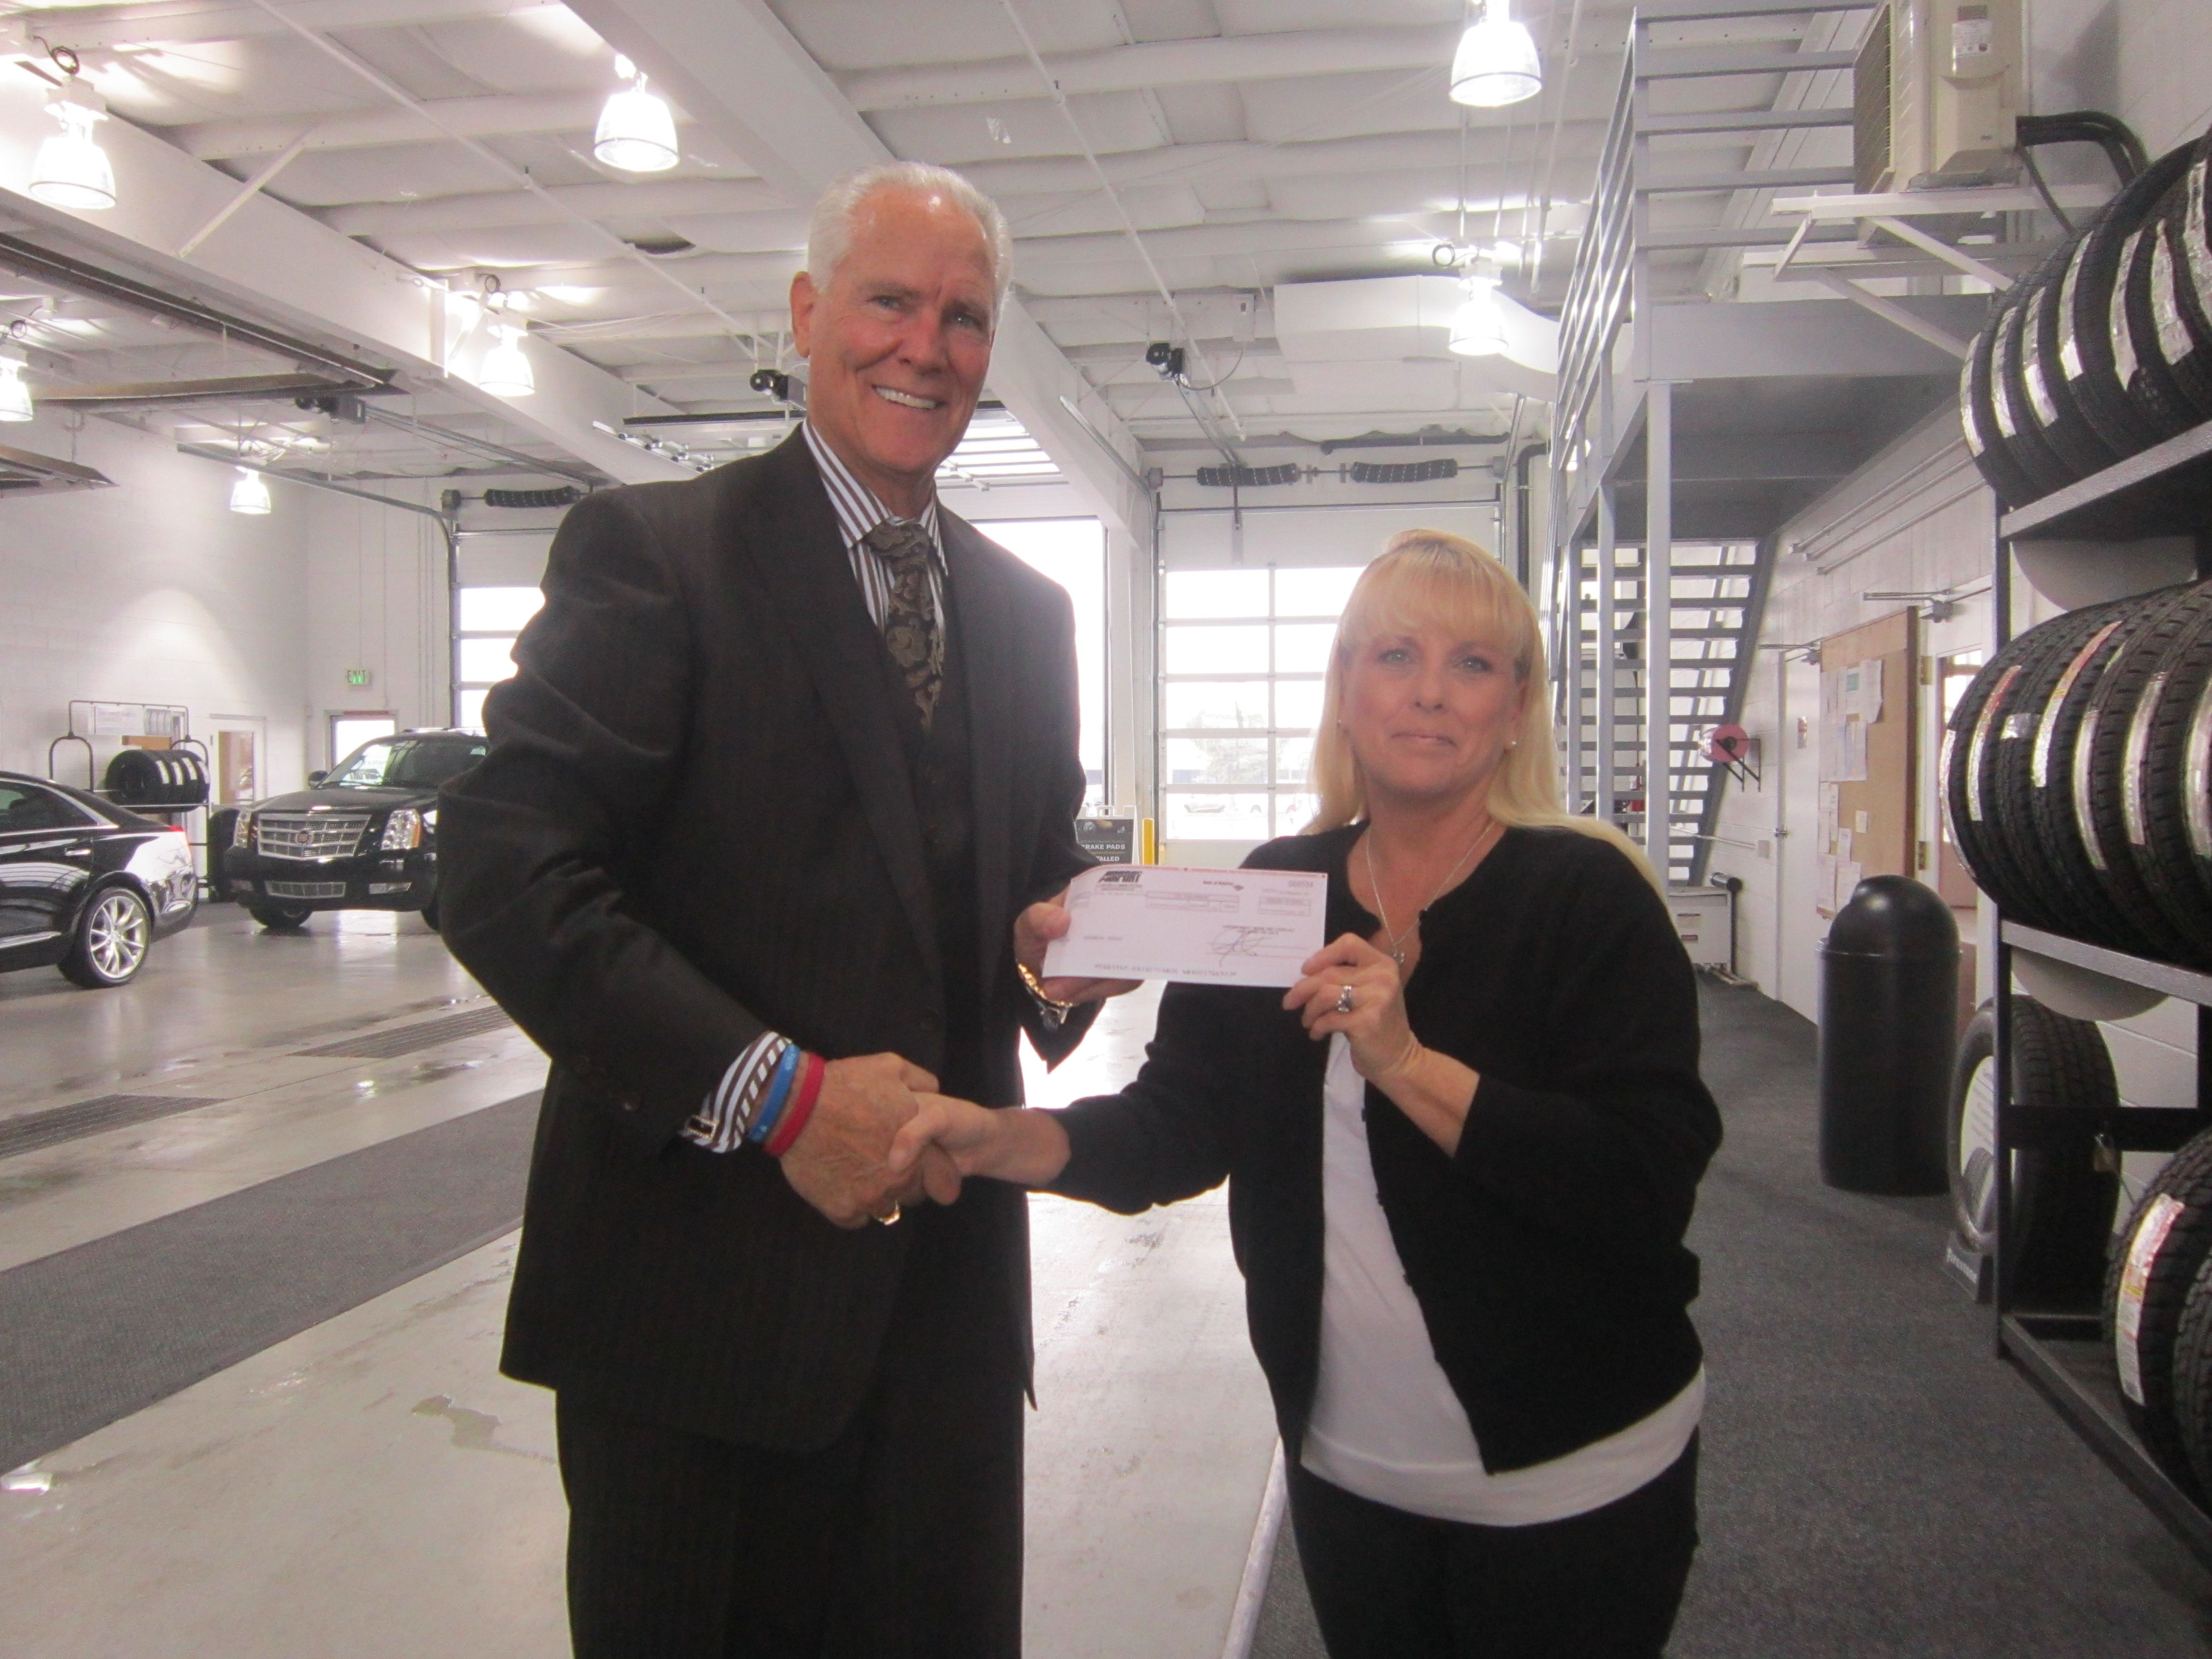 Generous Donation for Dave Mills at Airport Chevrolet ~ Thank you Dave and Airport Chevy for Helping Make Smiles for Cancer kids this year!